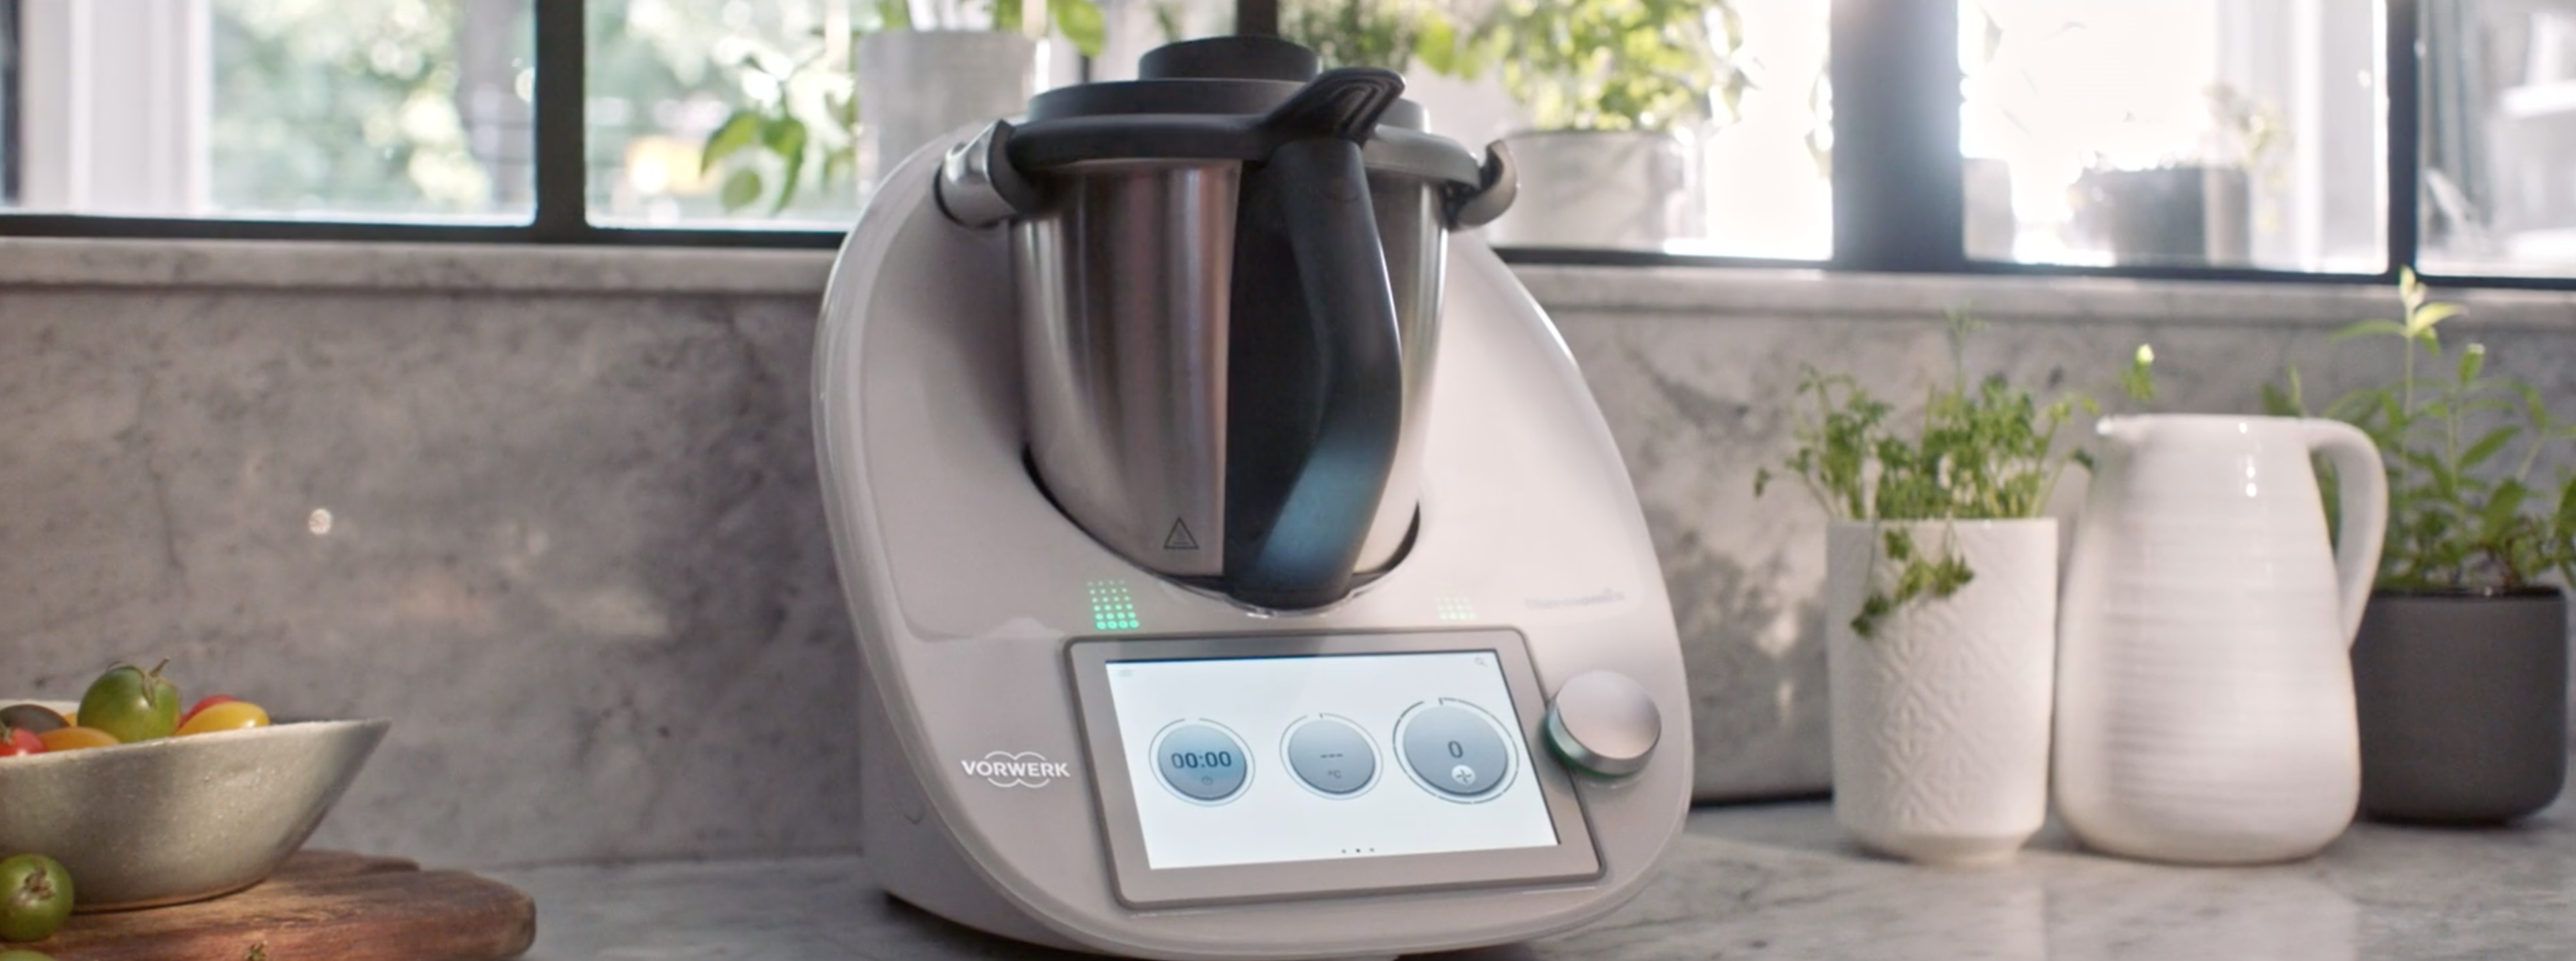 Thermomix on display in a smart kitchen